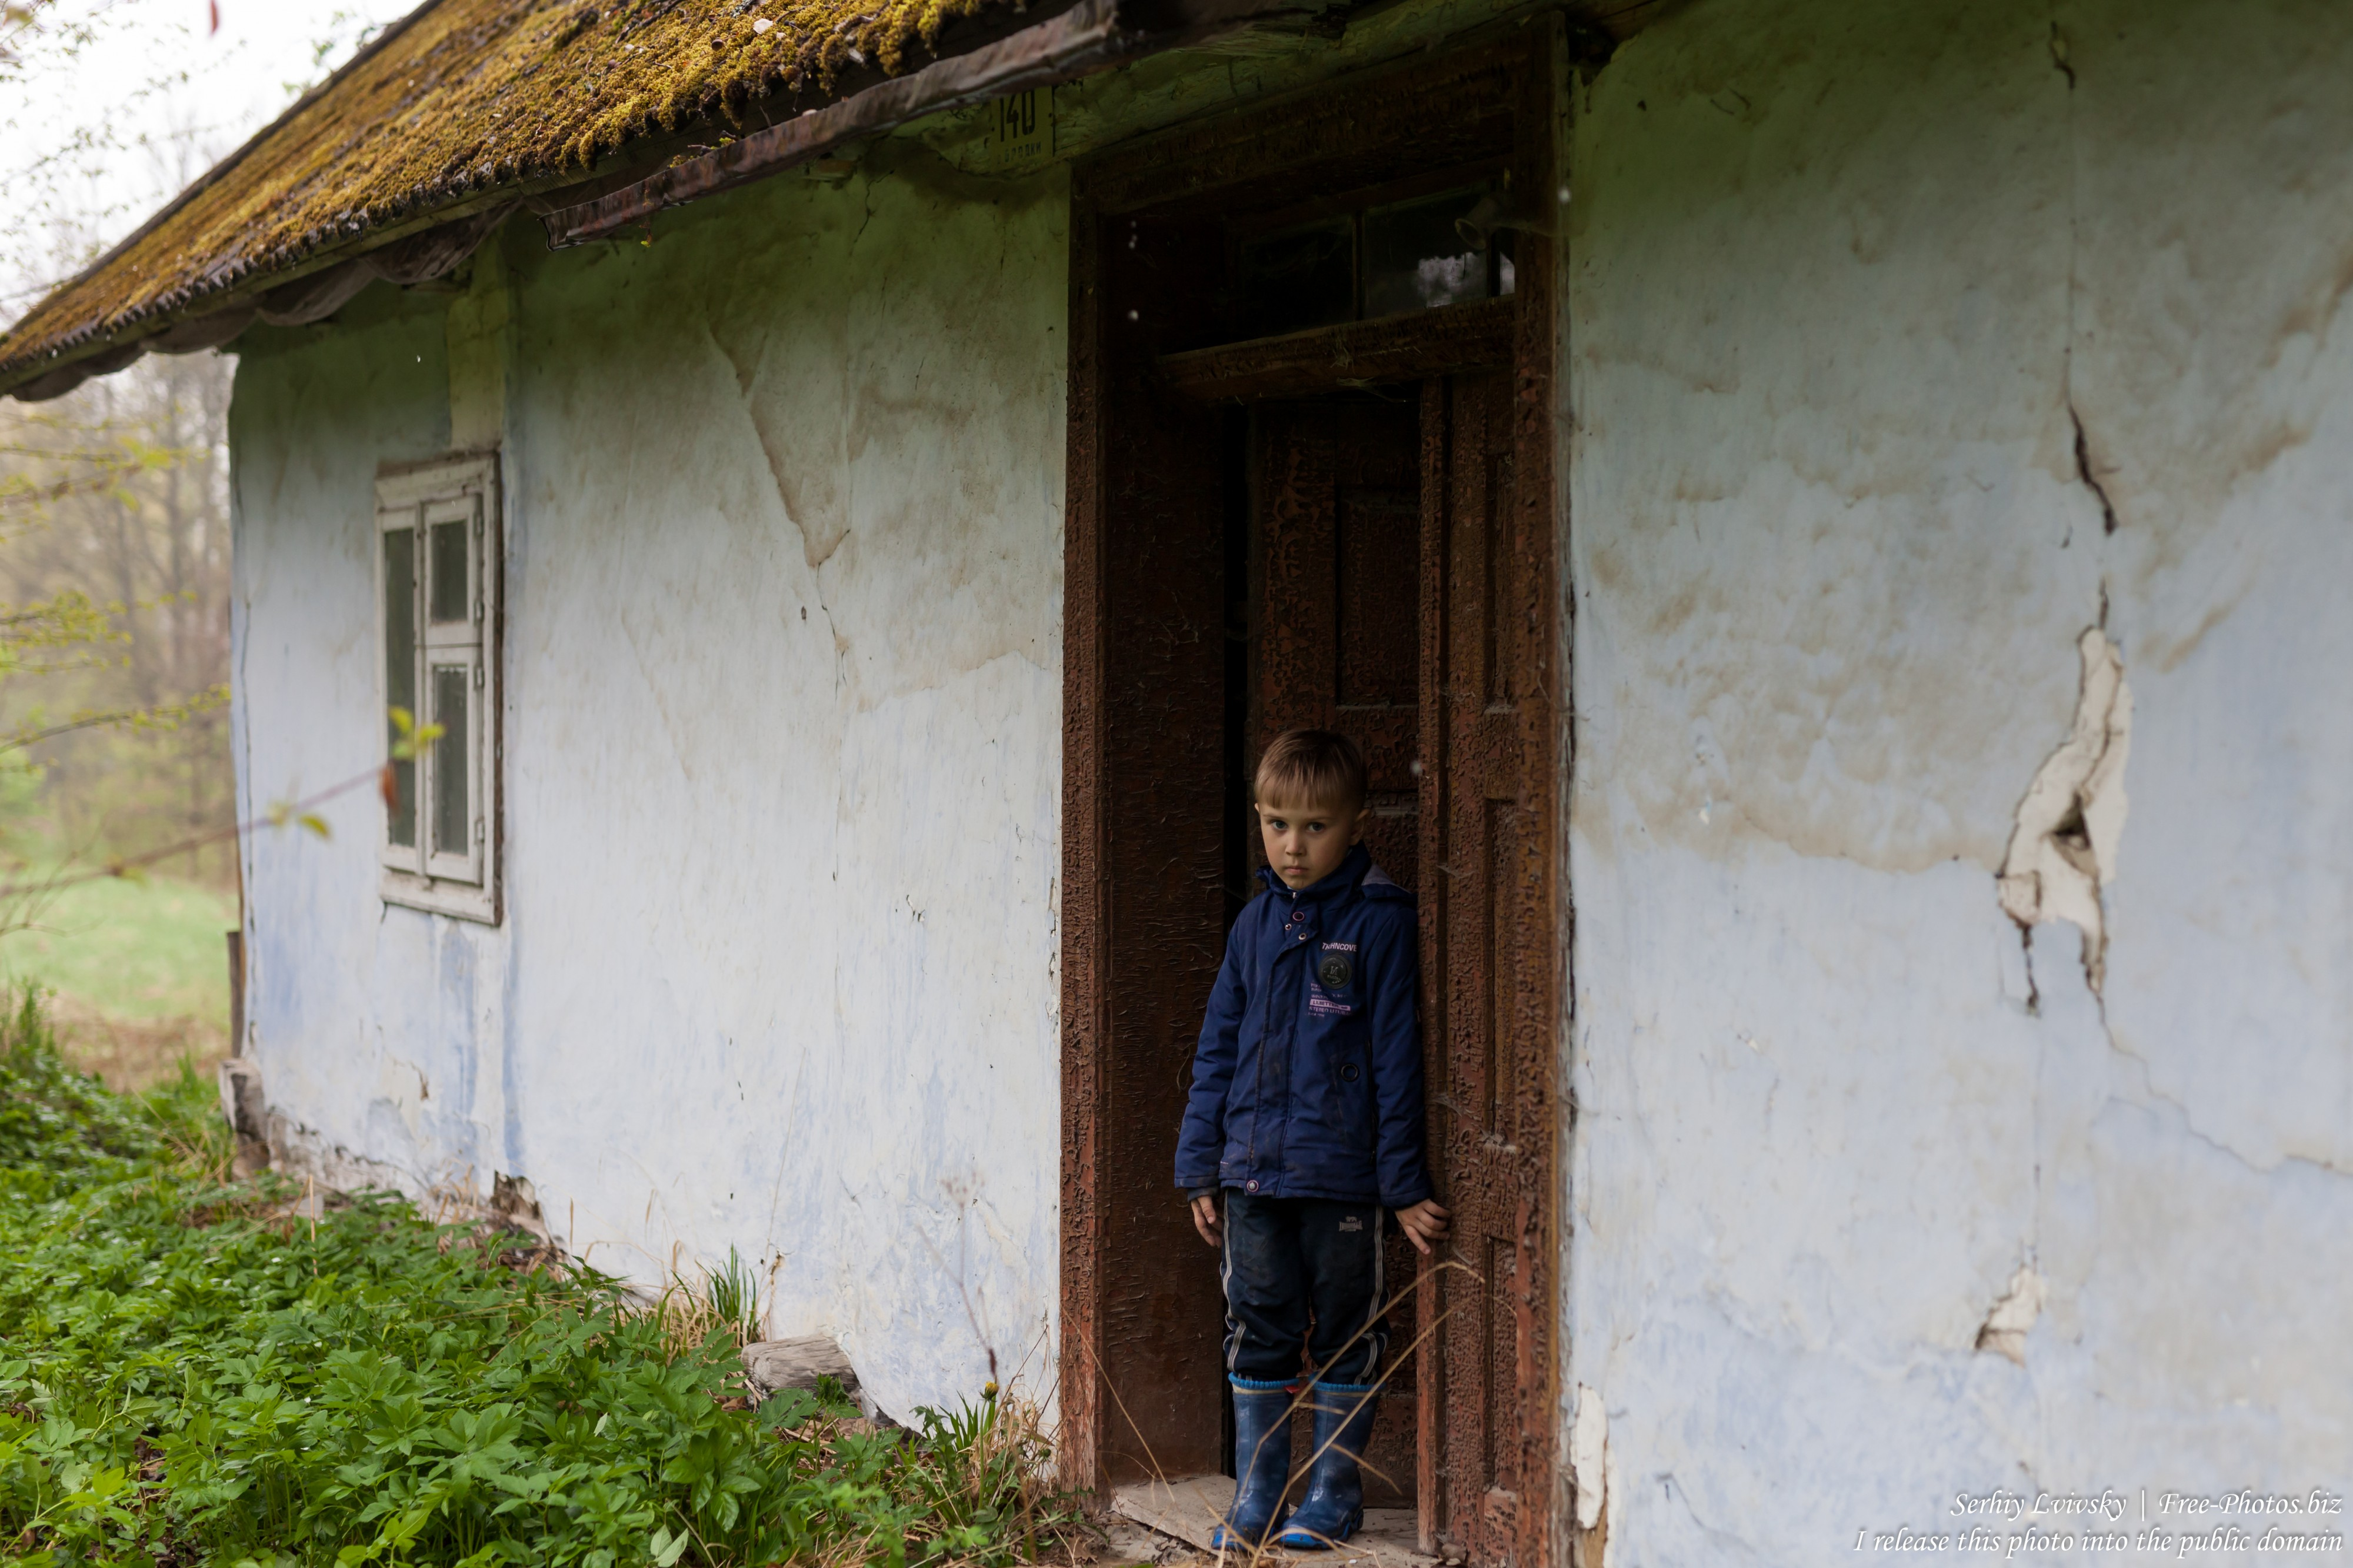 a 6-year-old boy photographed in April 2019 by Serhiy Lvivsky